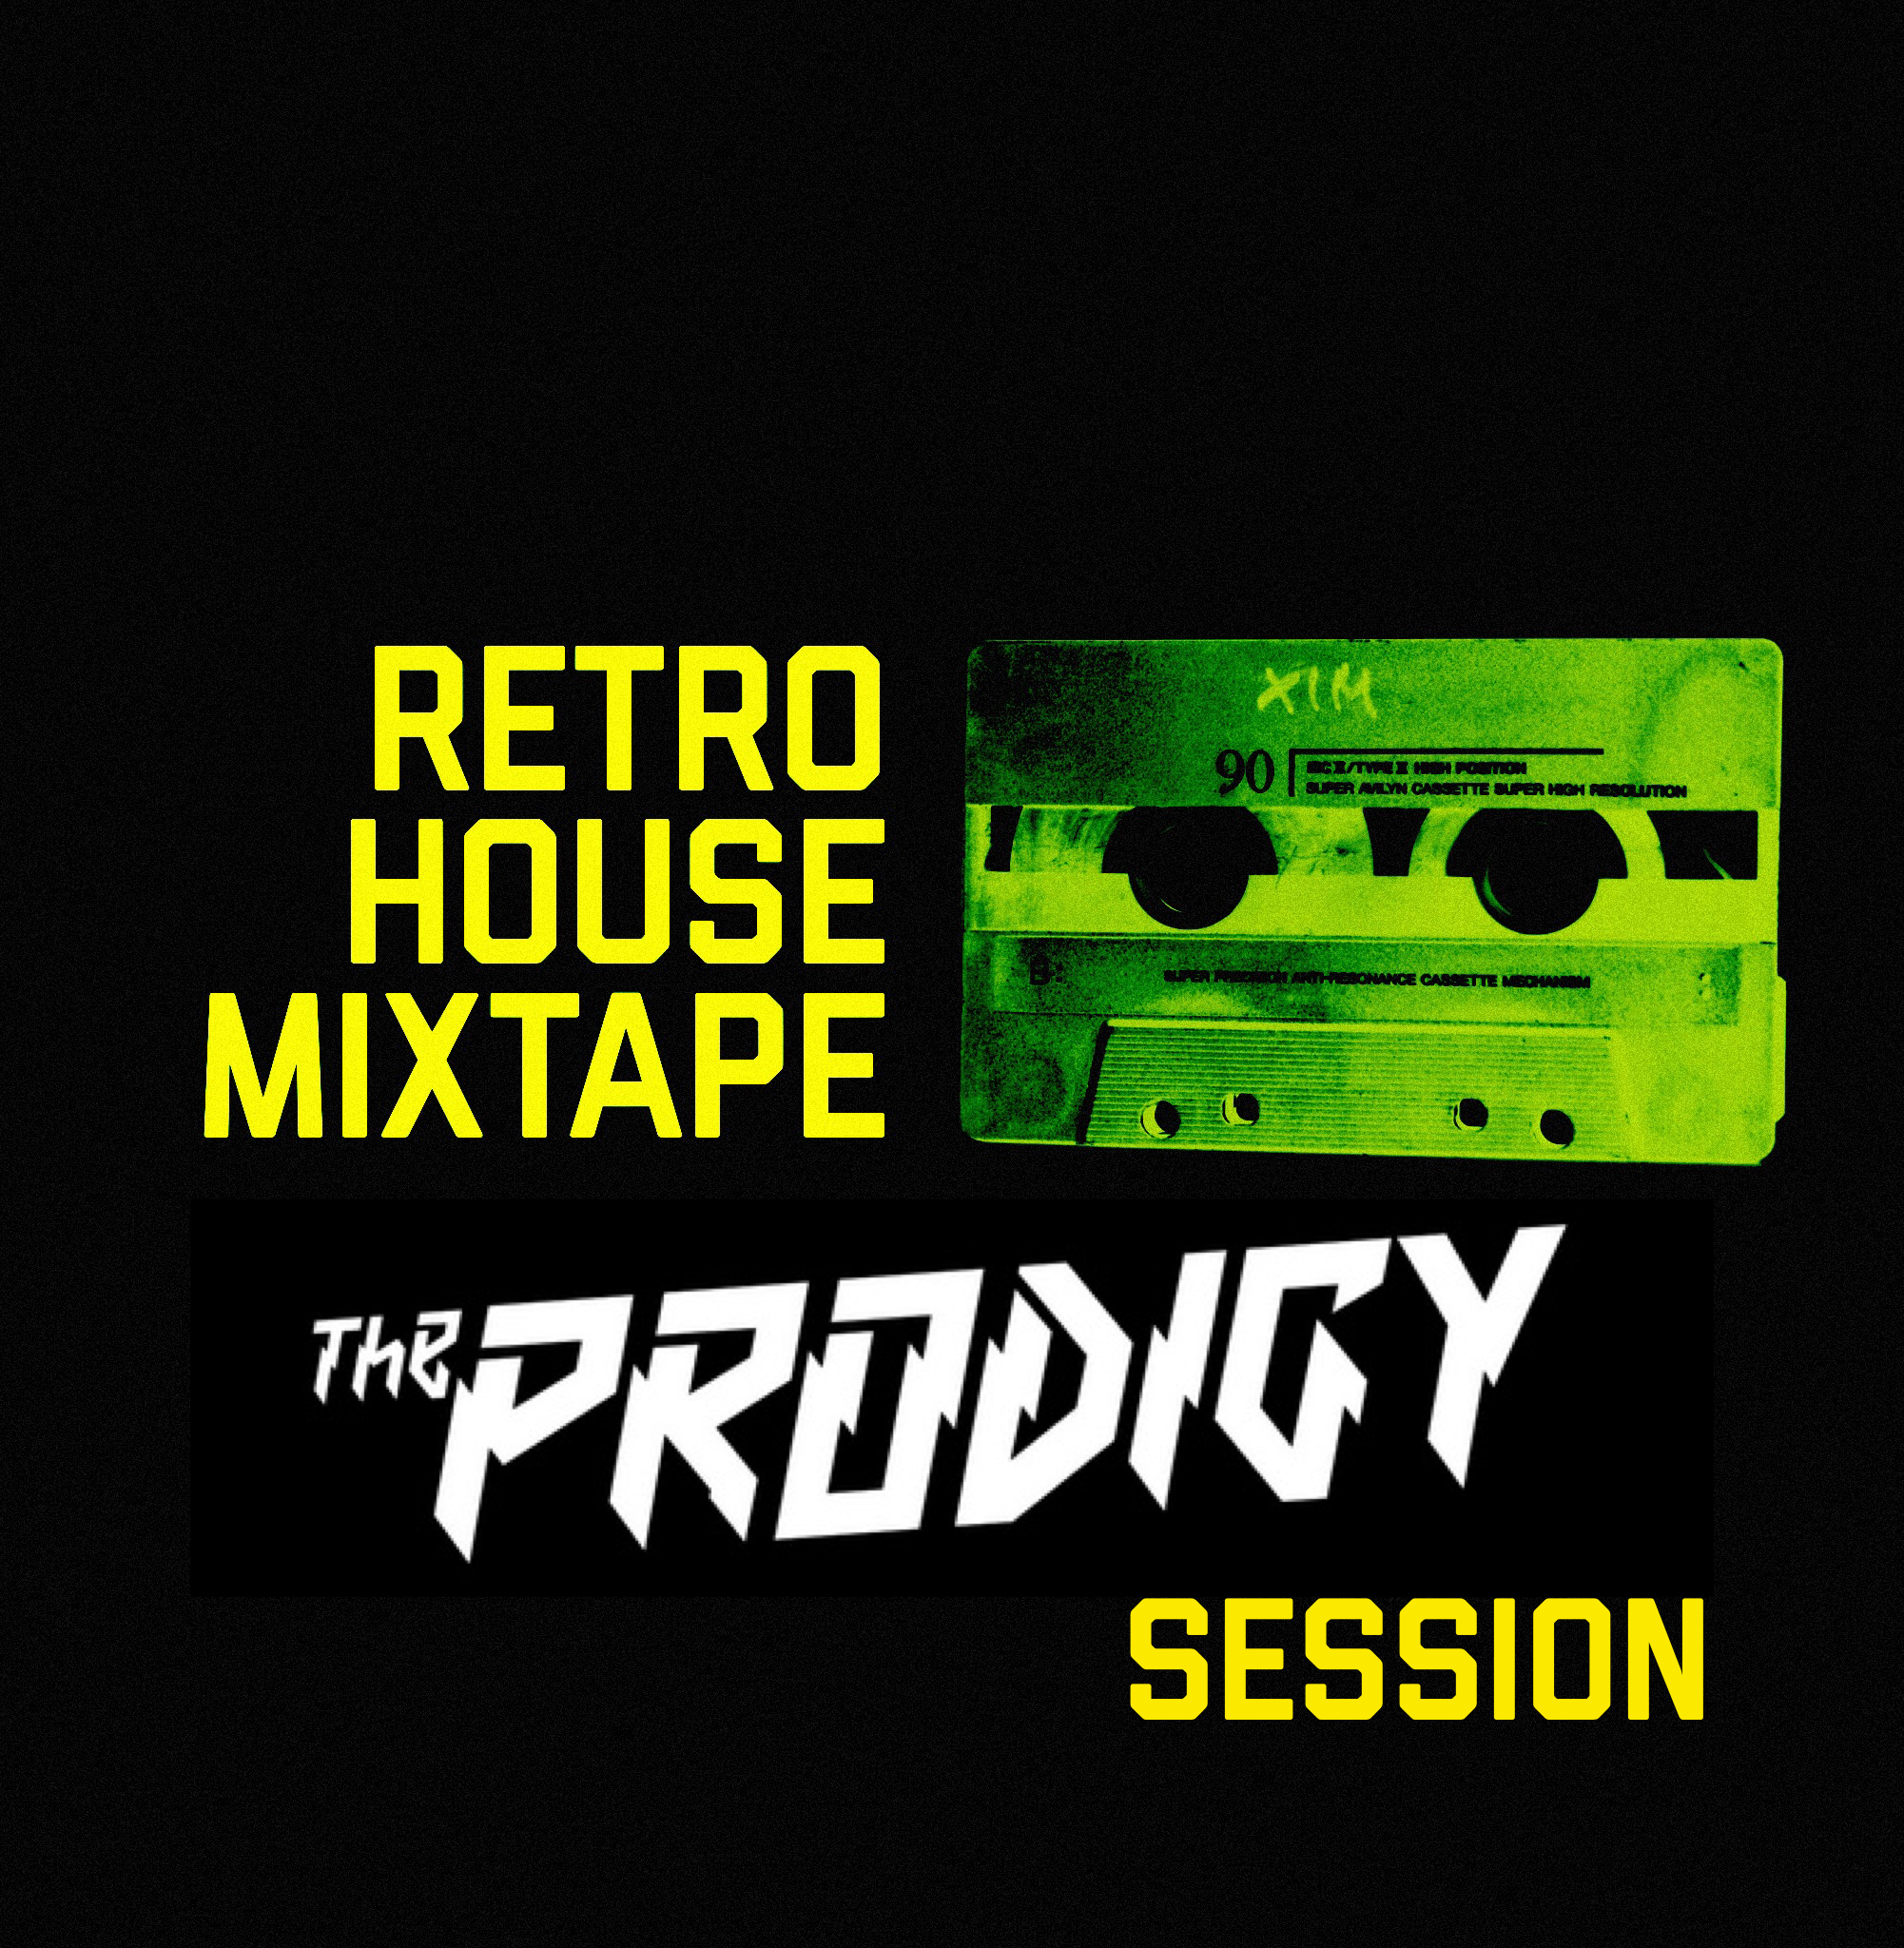 The Prodigy Session